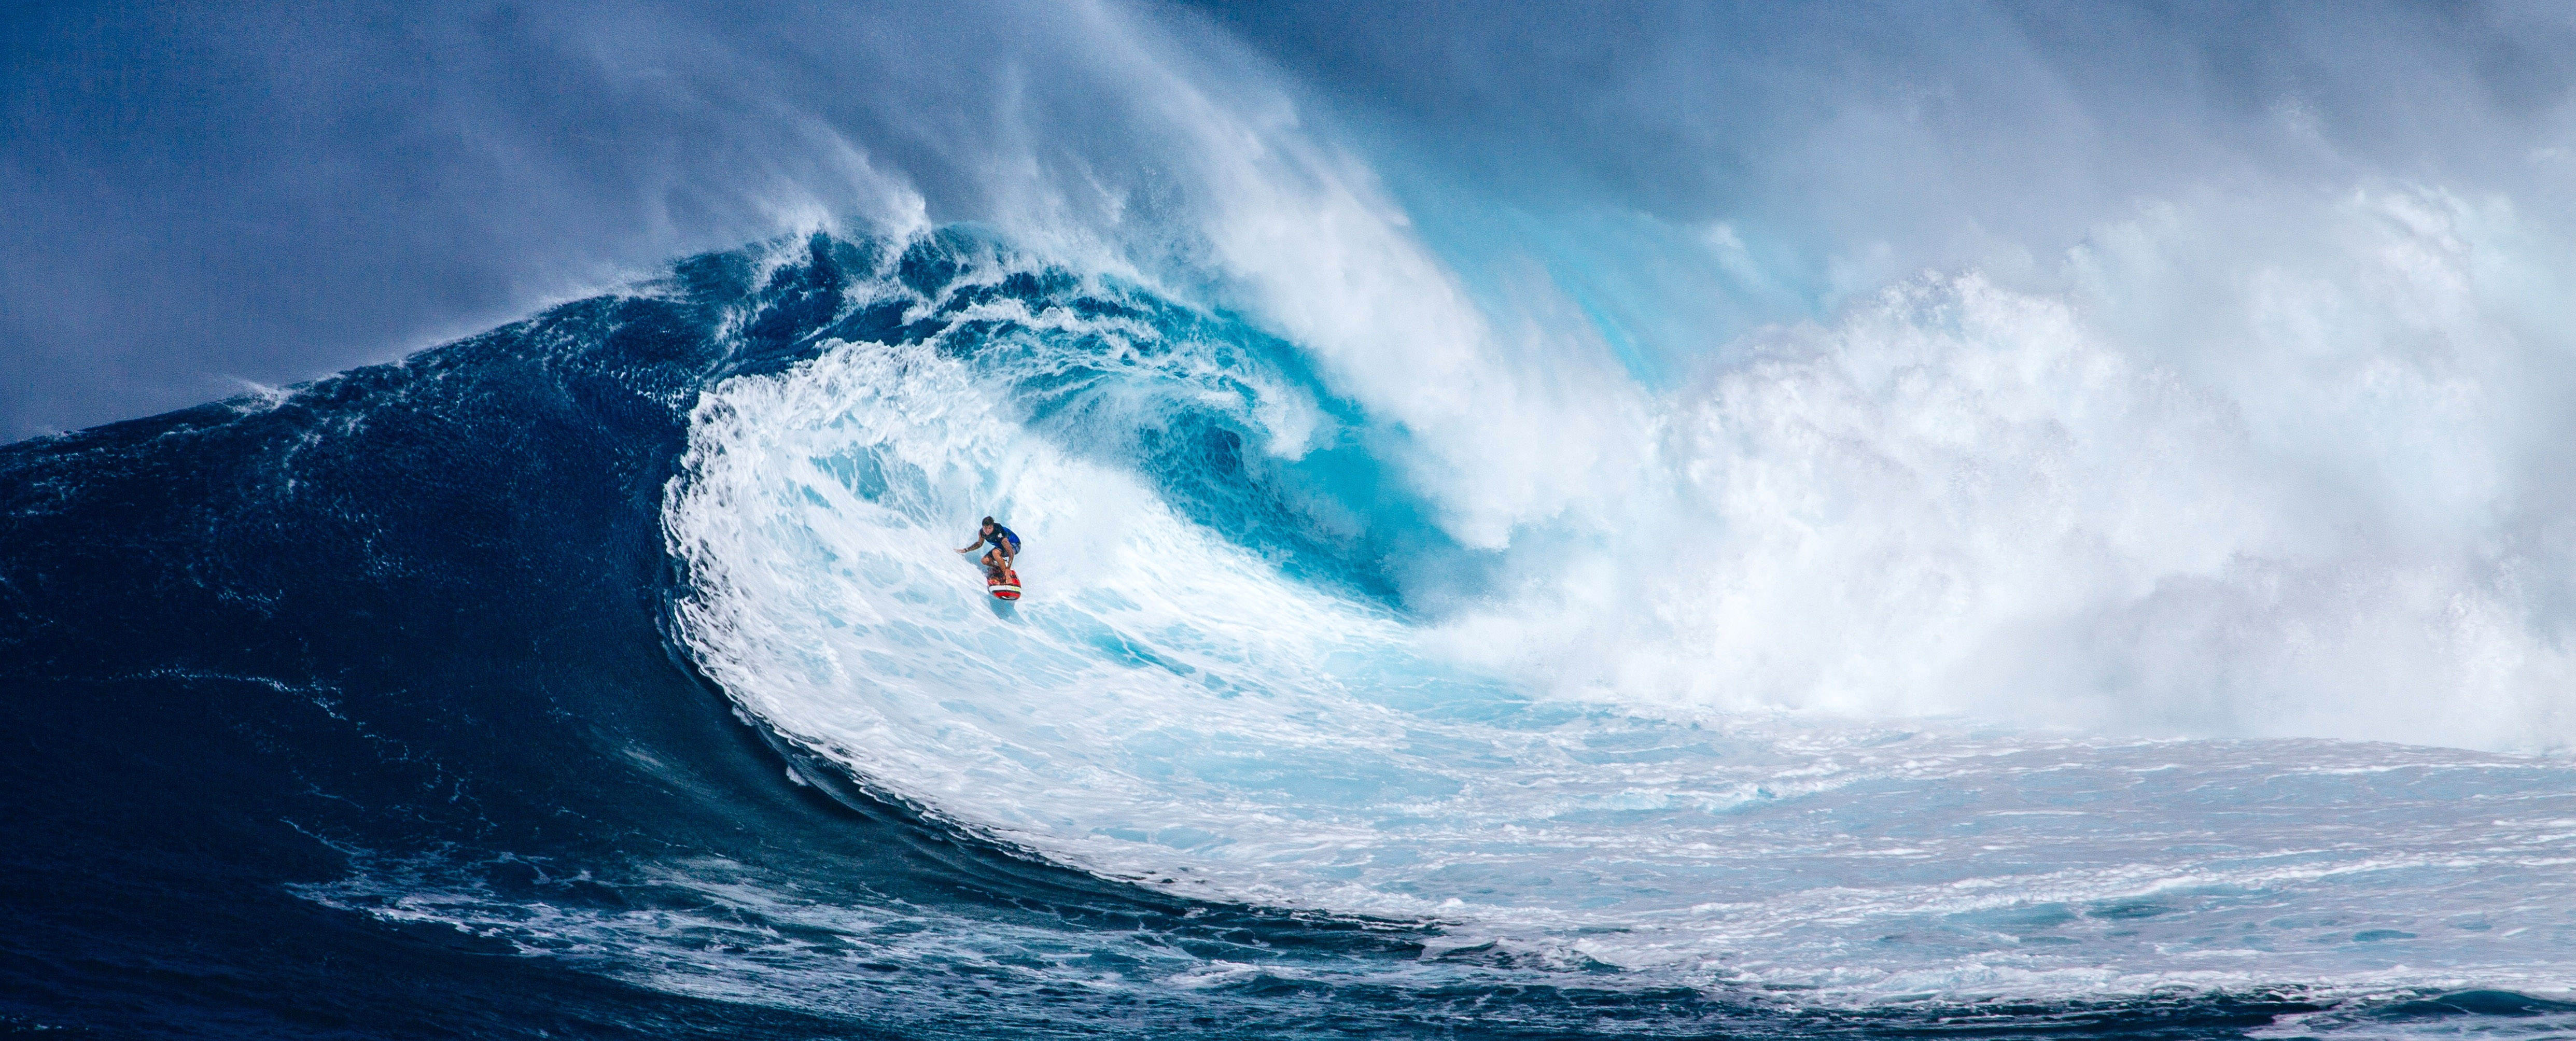 Surfer Riding Giant Wave In Hawaii Image Free Stock Photo